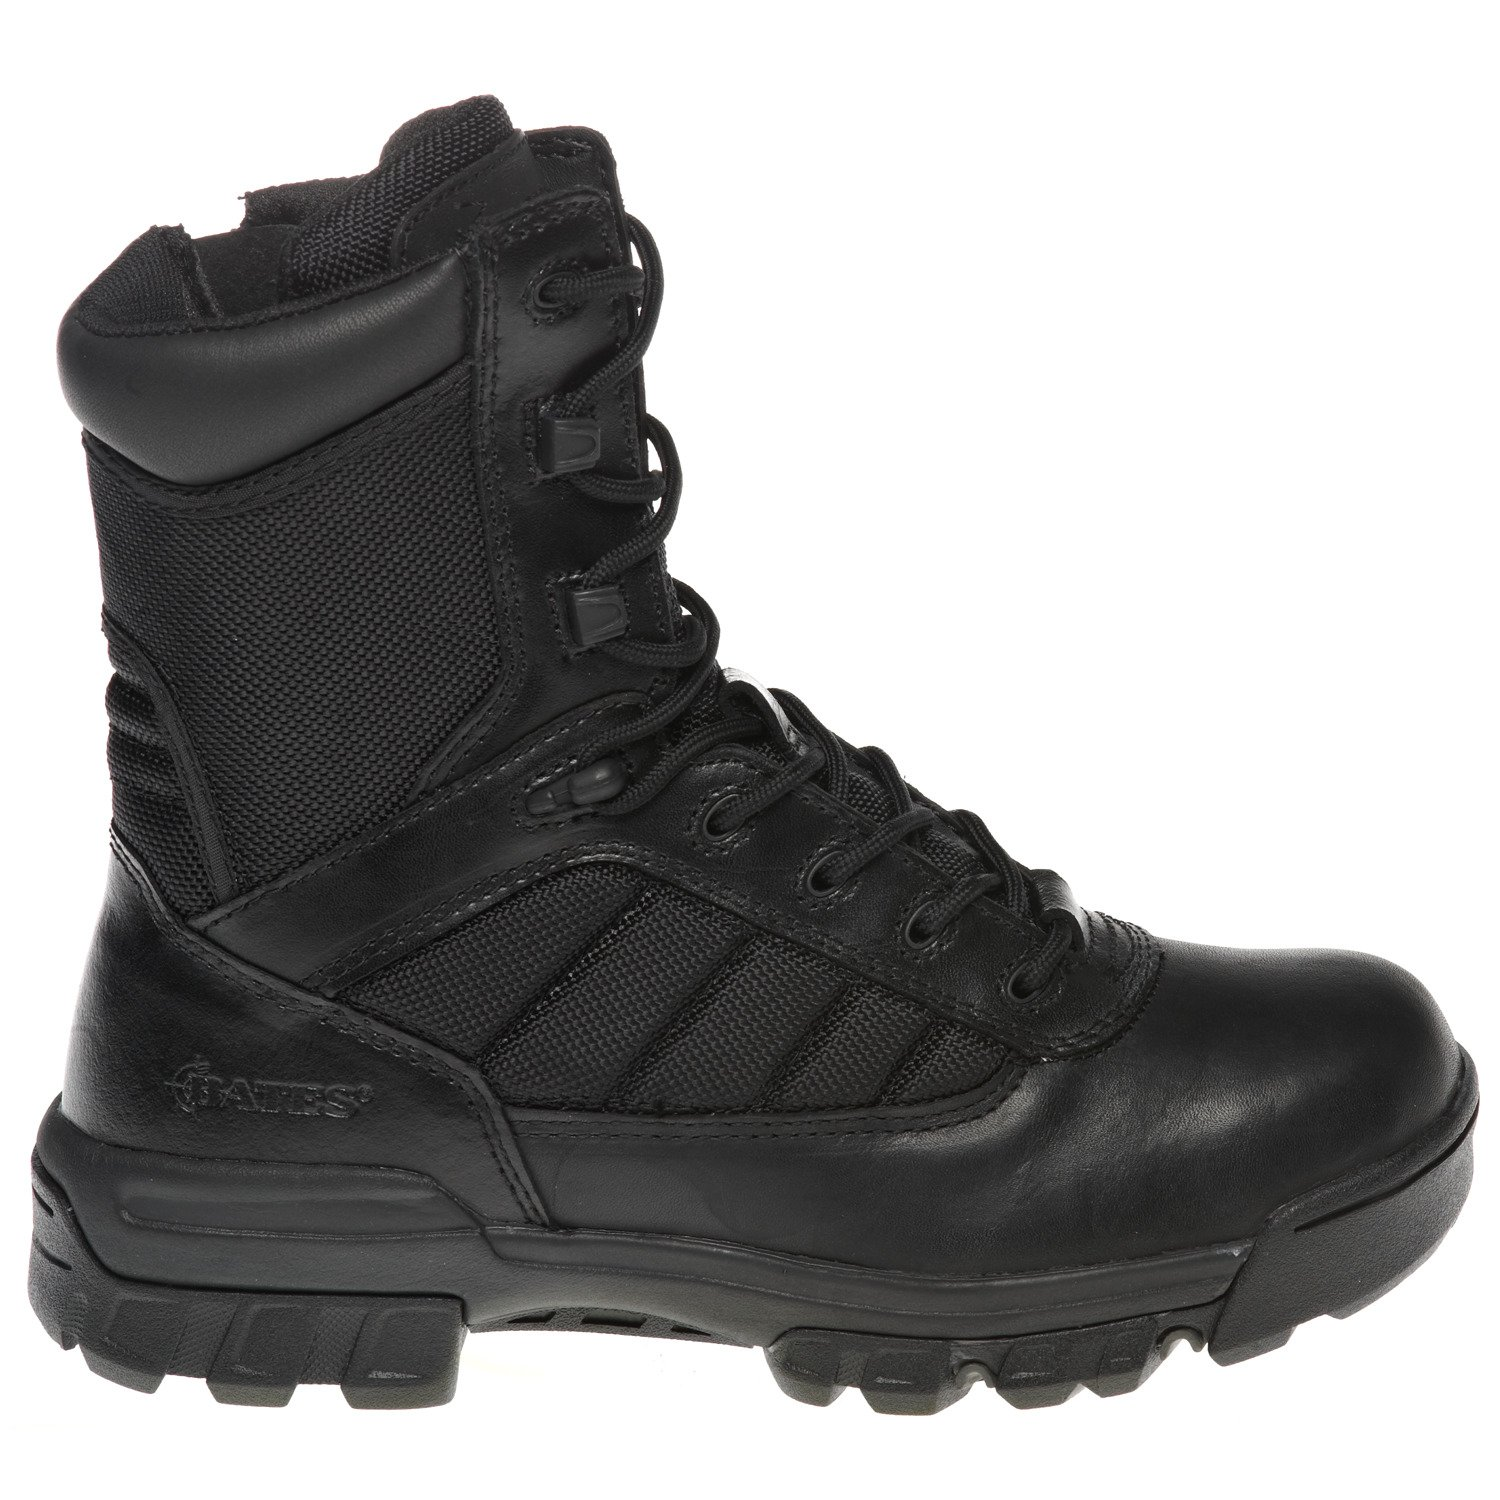 23cb75ed303af1 Display product reviews for Bates Women s Ultra-Lites Tactical Sport  Side-Zip Boots